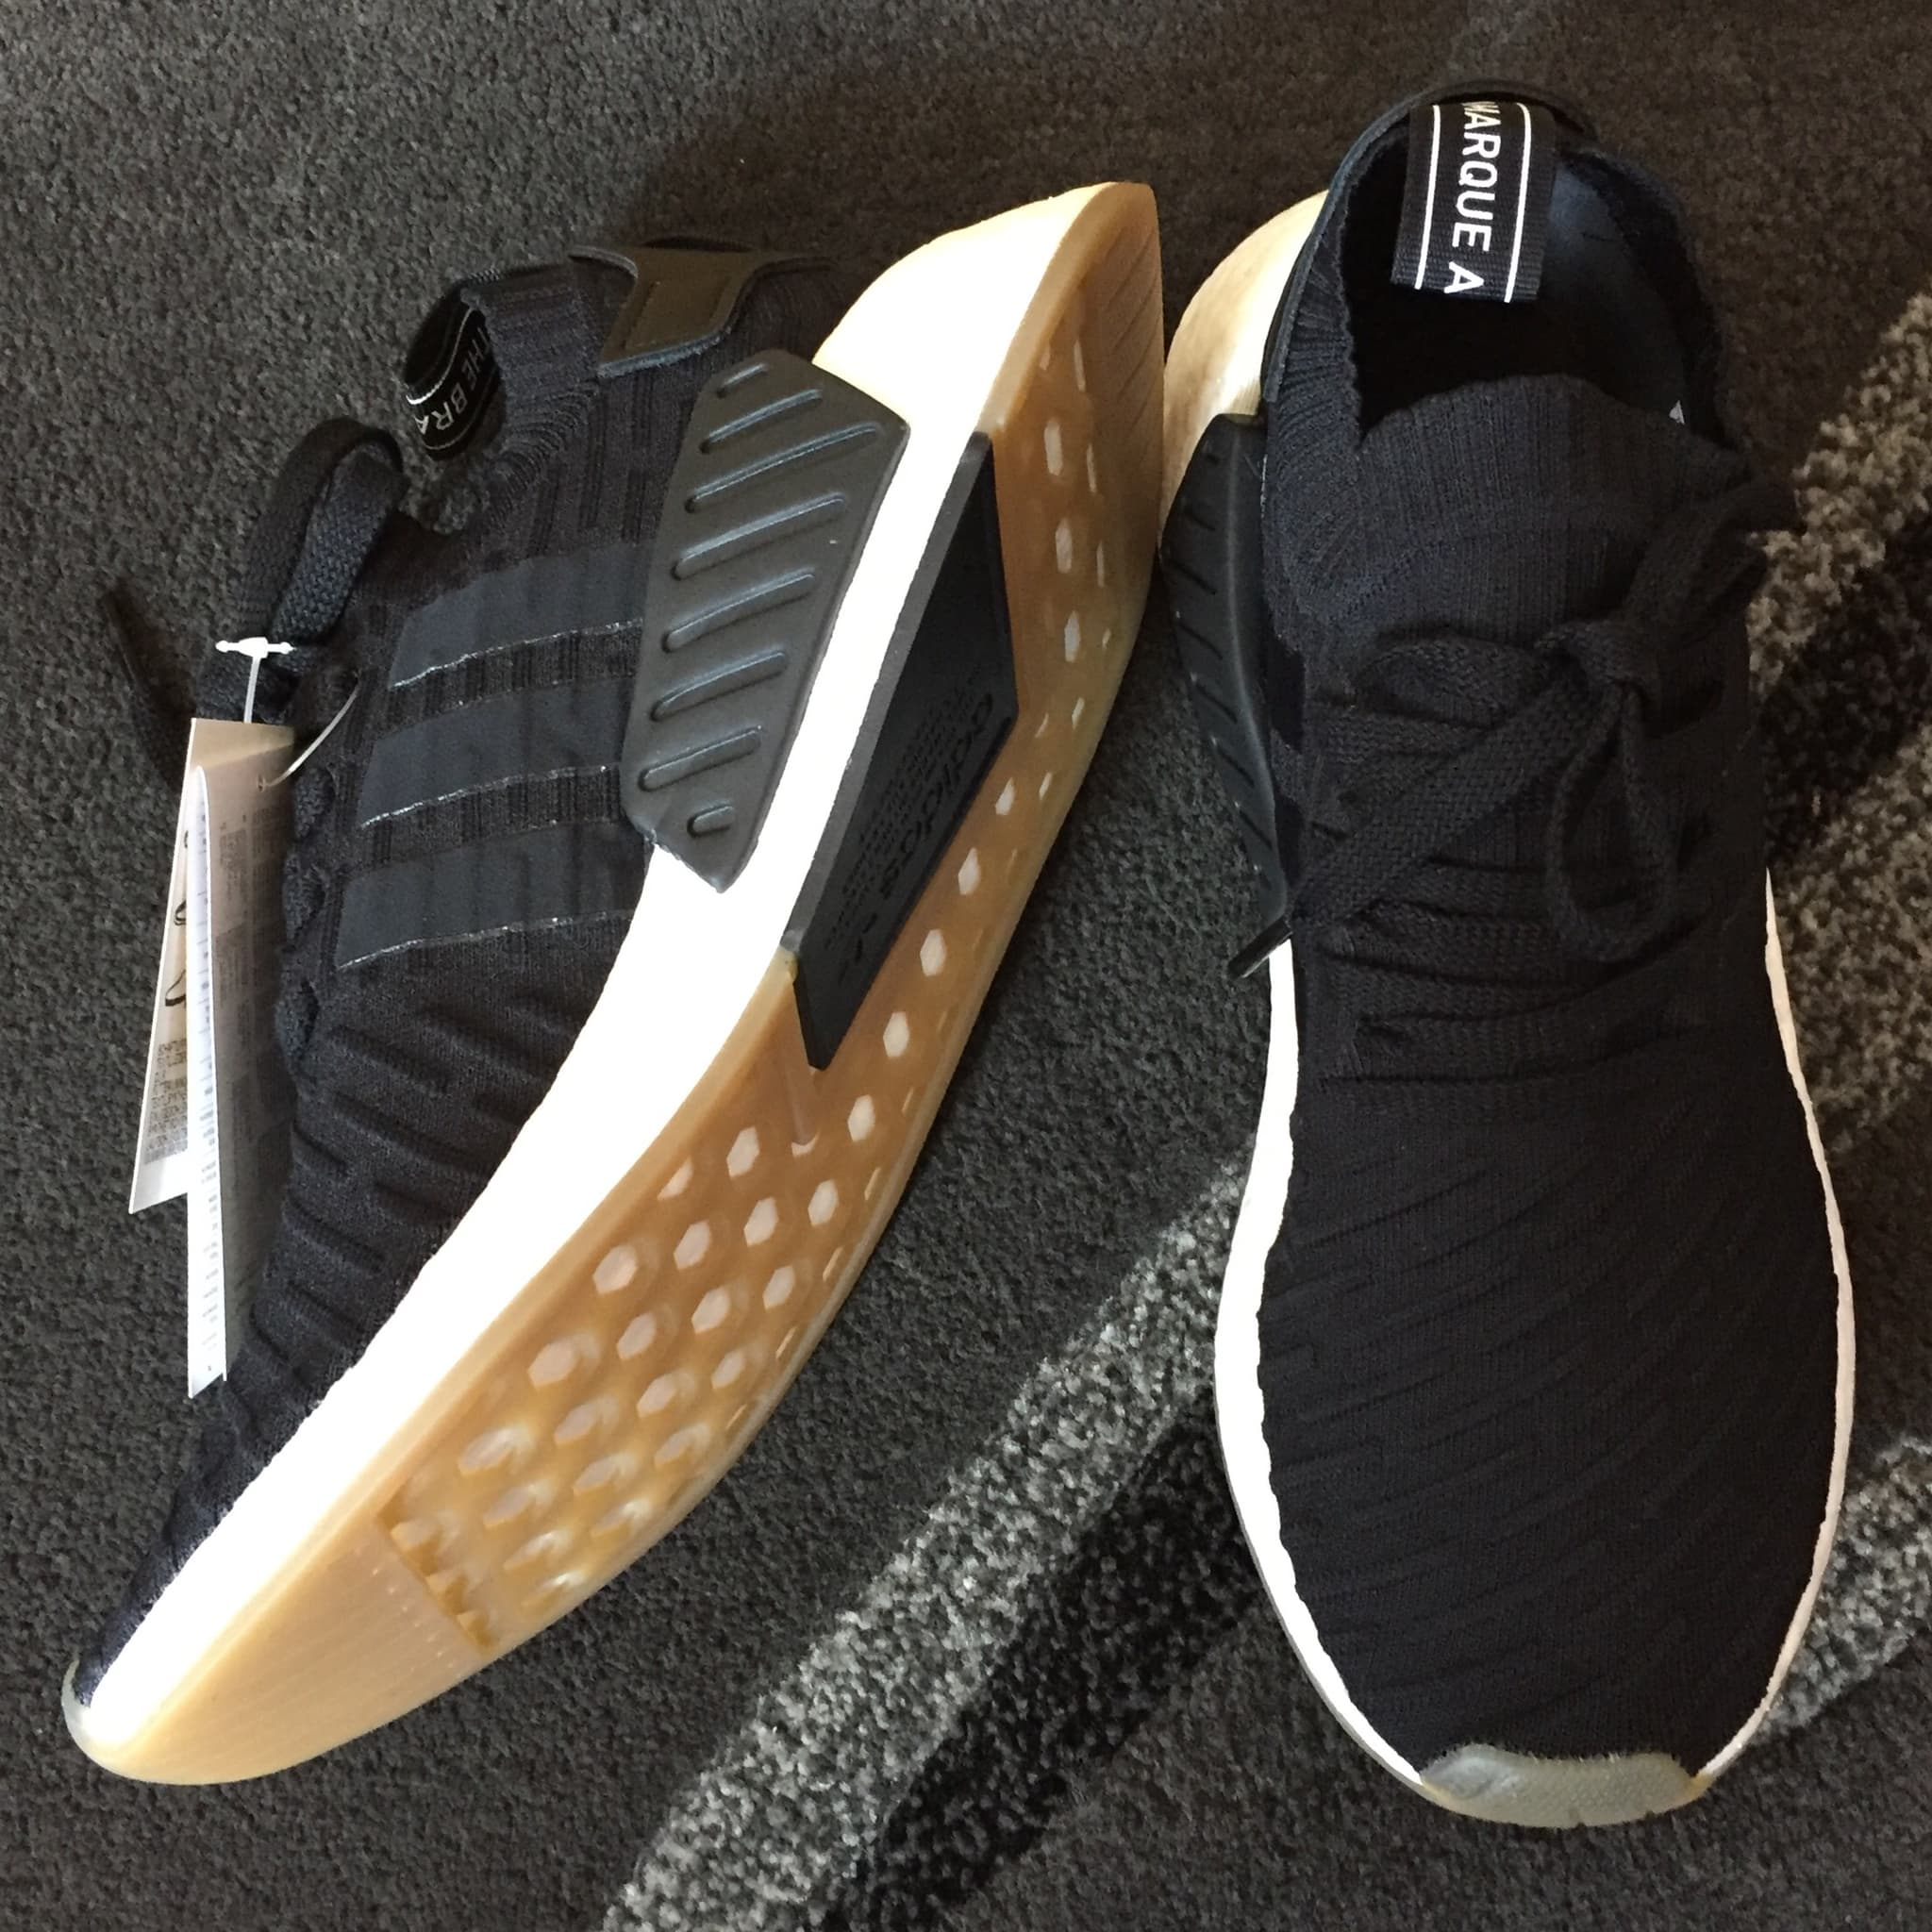 new styles 64d8c bf5d8 Jual Adidas NMD R2 PK Japan Pack Black Gum BY9696 ...